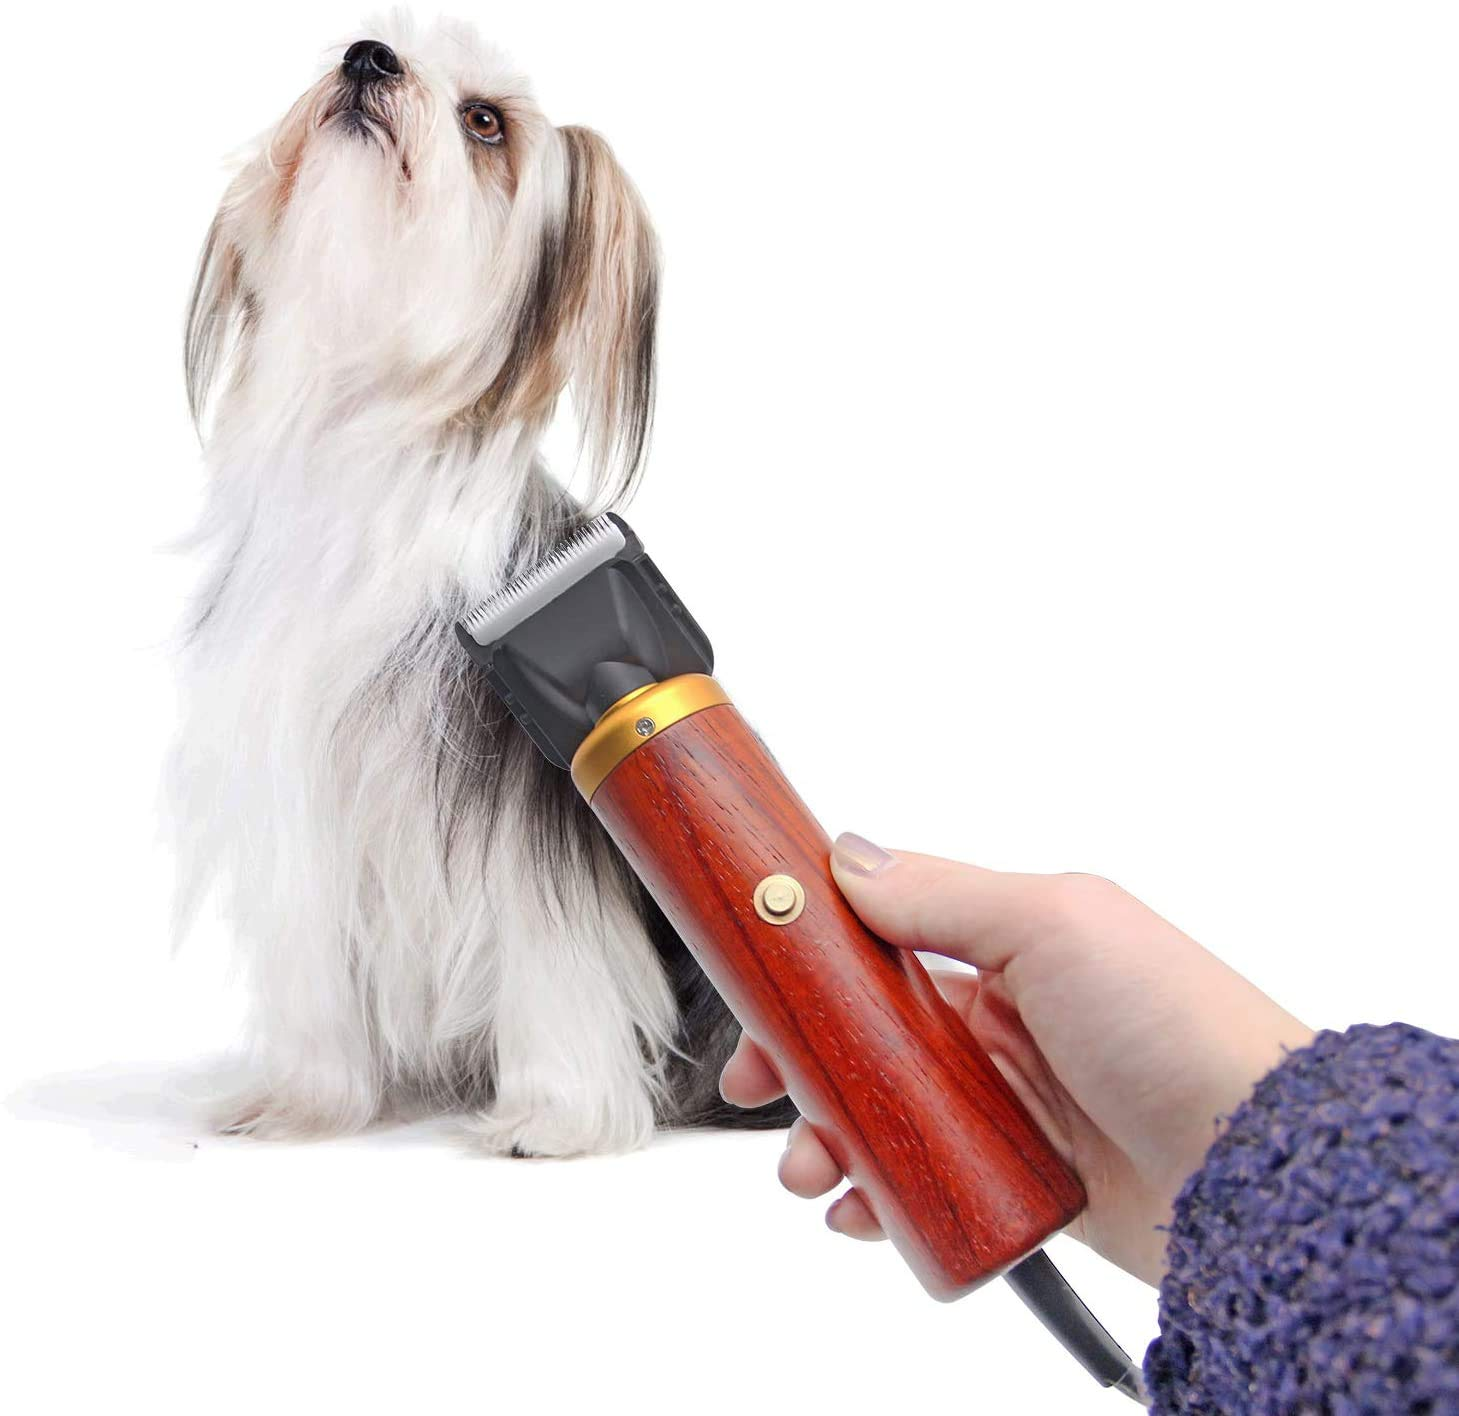 CGOLDENWALL Professional Hairy Rabbit Clipper Pet Hair Trimmer 3m Wire 55W Samo Tedi Electric Shaver for Rabbit//Dog//Cat//Sheep and Other Animals 220V